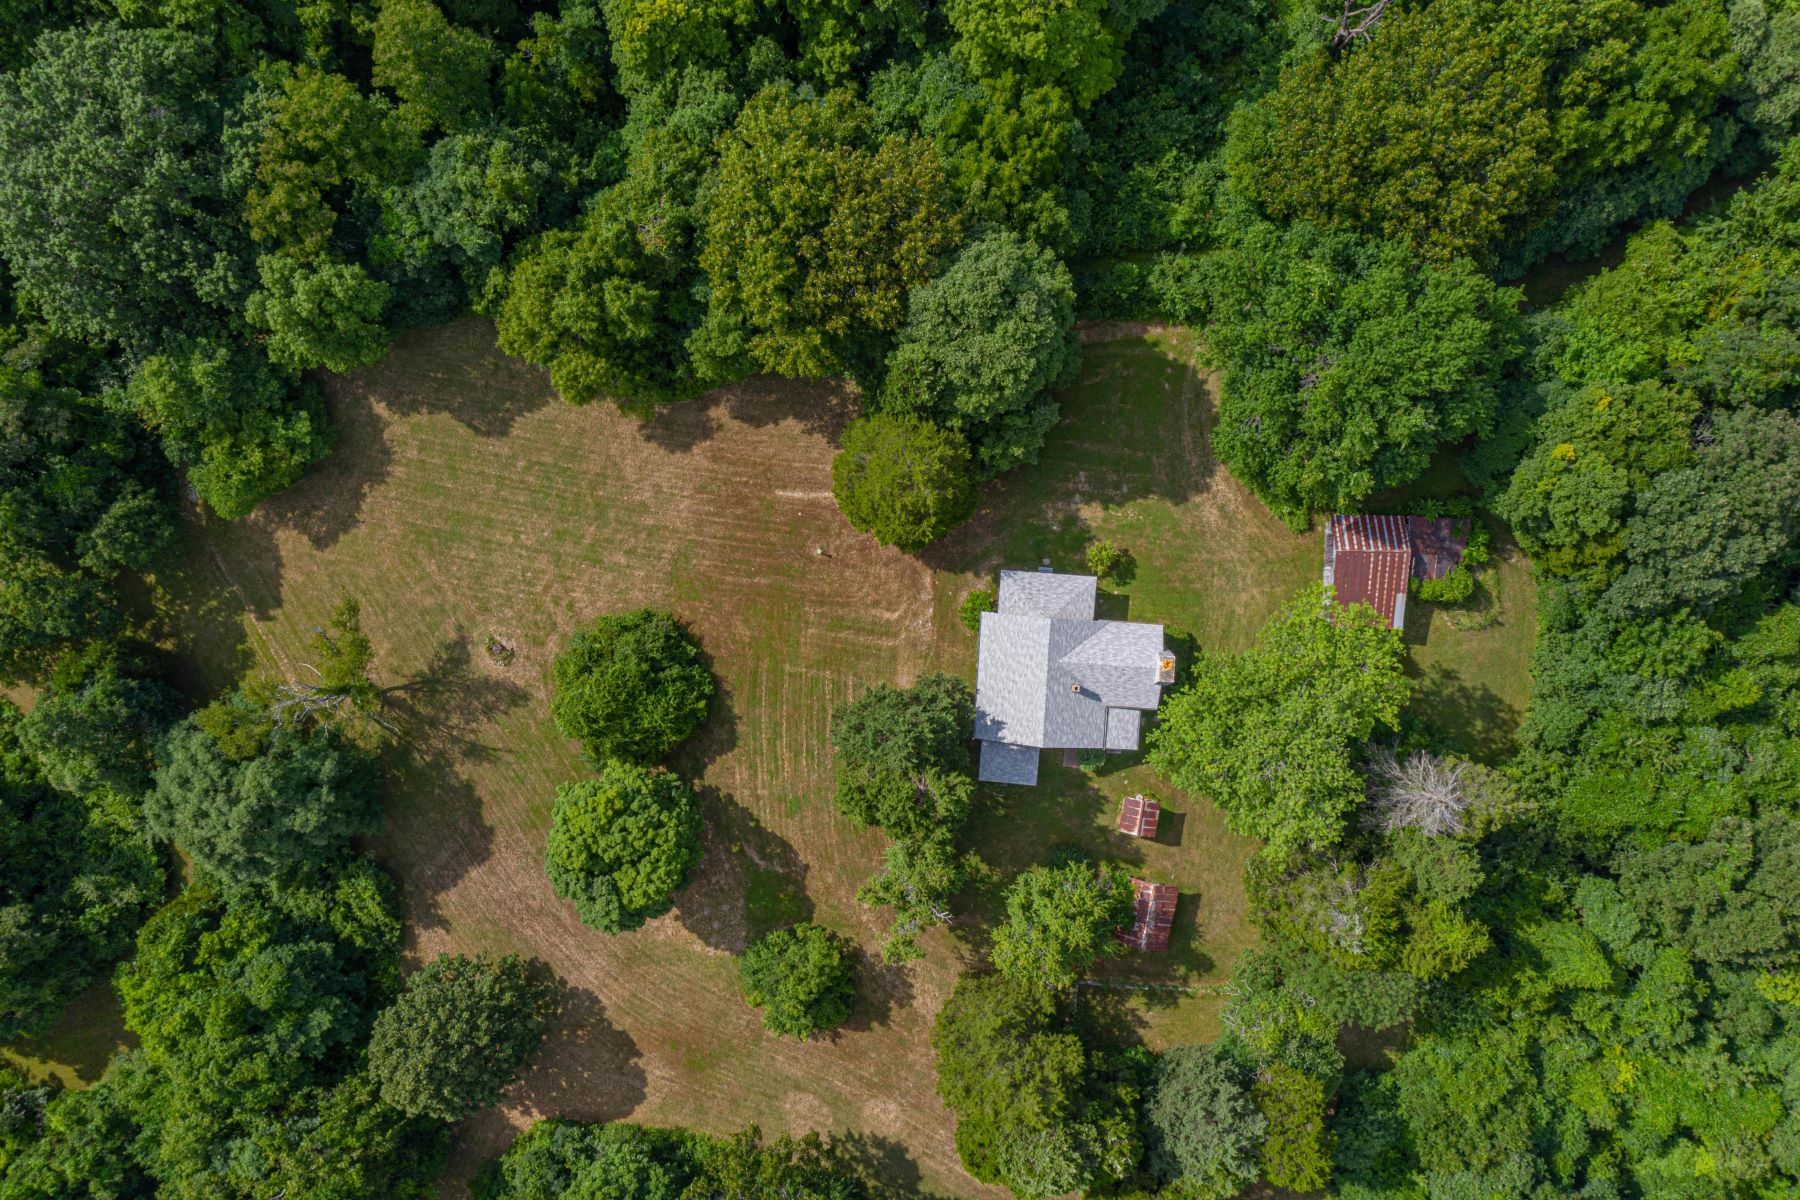 Property for Sale at Peaceful Retreat Overlooking Wild Horse Creek Valley 19360 River Ridge Lane Wildwood, Missouri 63005 United States